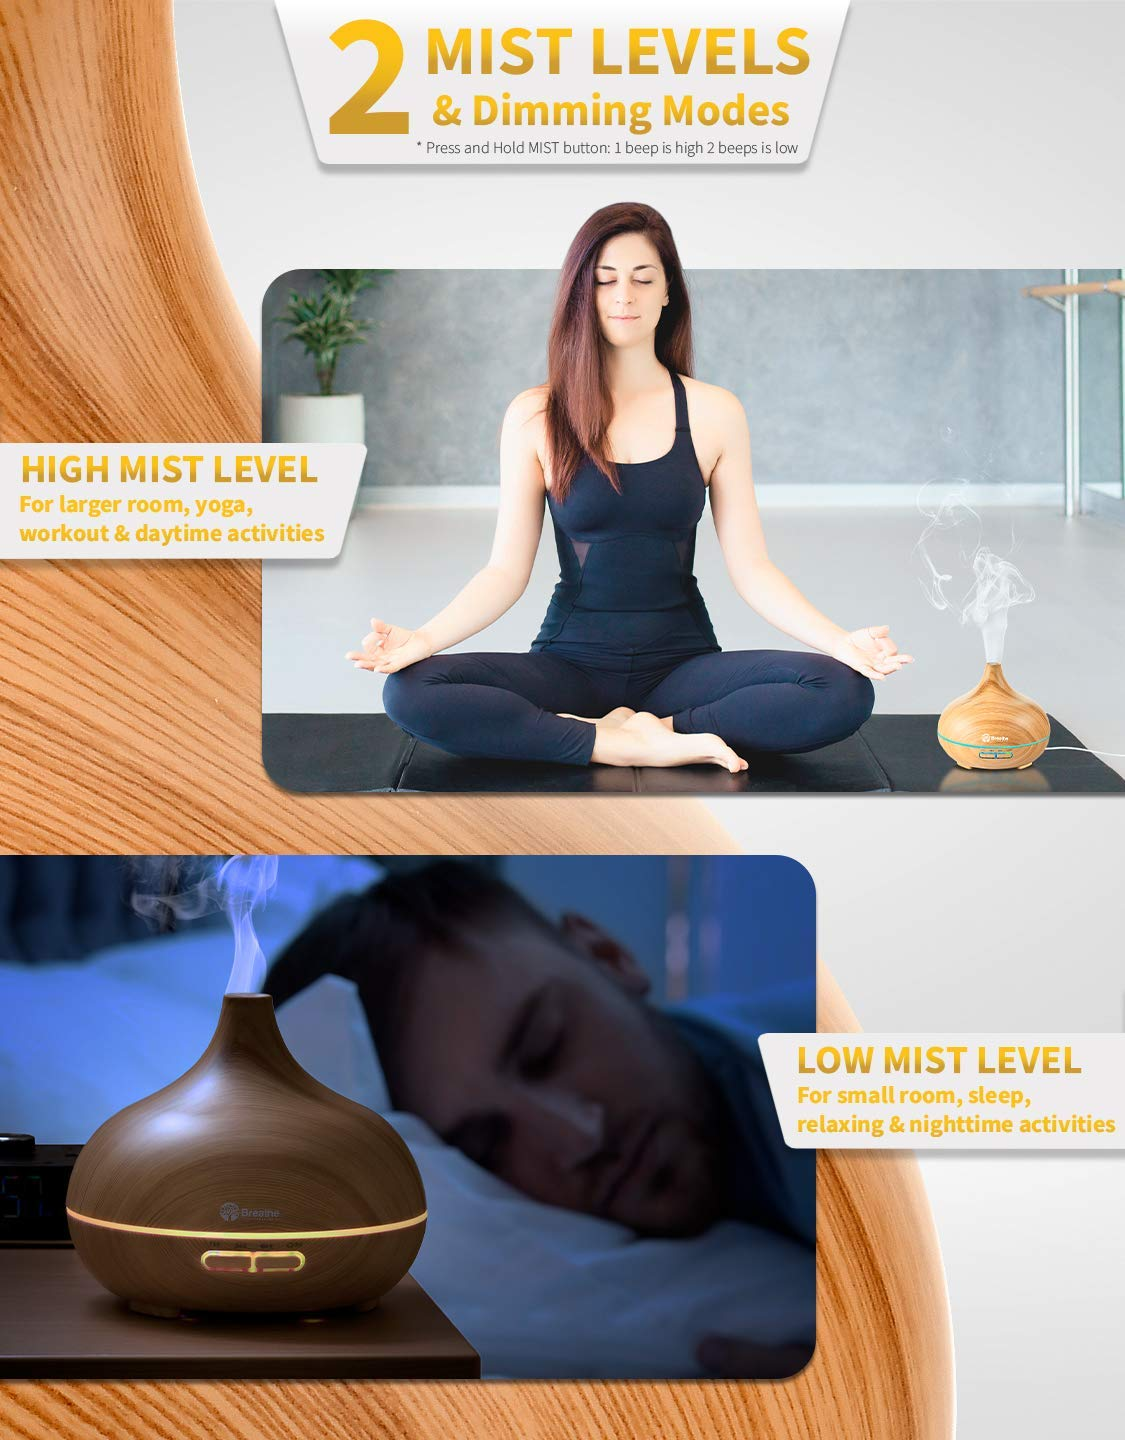 Breathe Essential Oil Diffuser | 550ml Diffusers for Essential Oils with Cleaning Kit & Measuring Cup | 16 LED Color Light Options, 4 Timer Settings, 2 Mist Outputs, Auto Power Off : Beauty